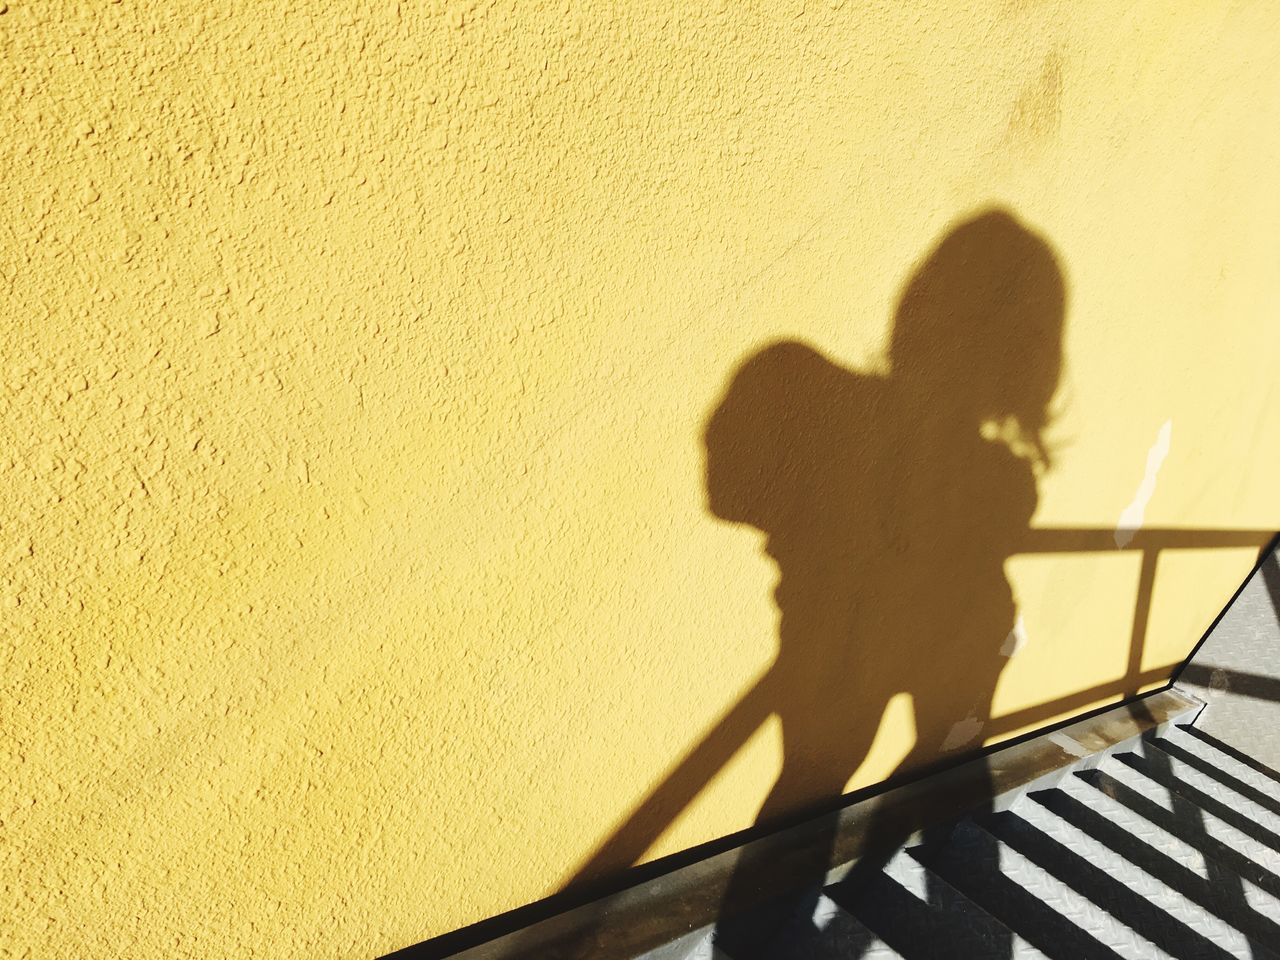 shadow, focus on shadow, sunlight, real people, one person, standing, outdoors, day, leisure activity, lifestyles, women, nature, people